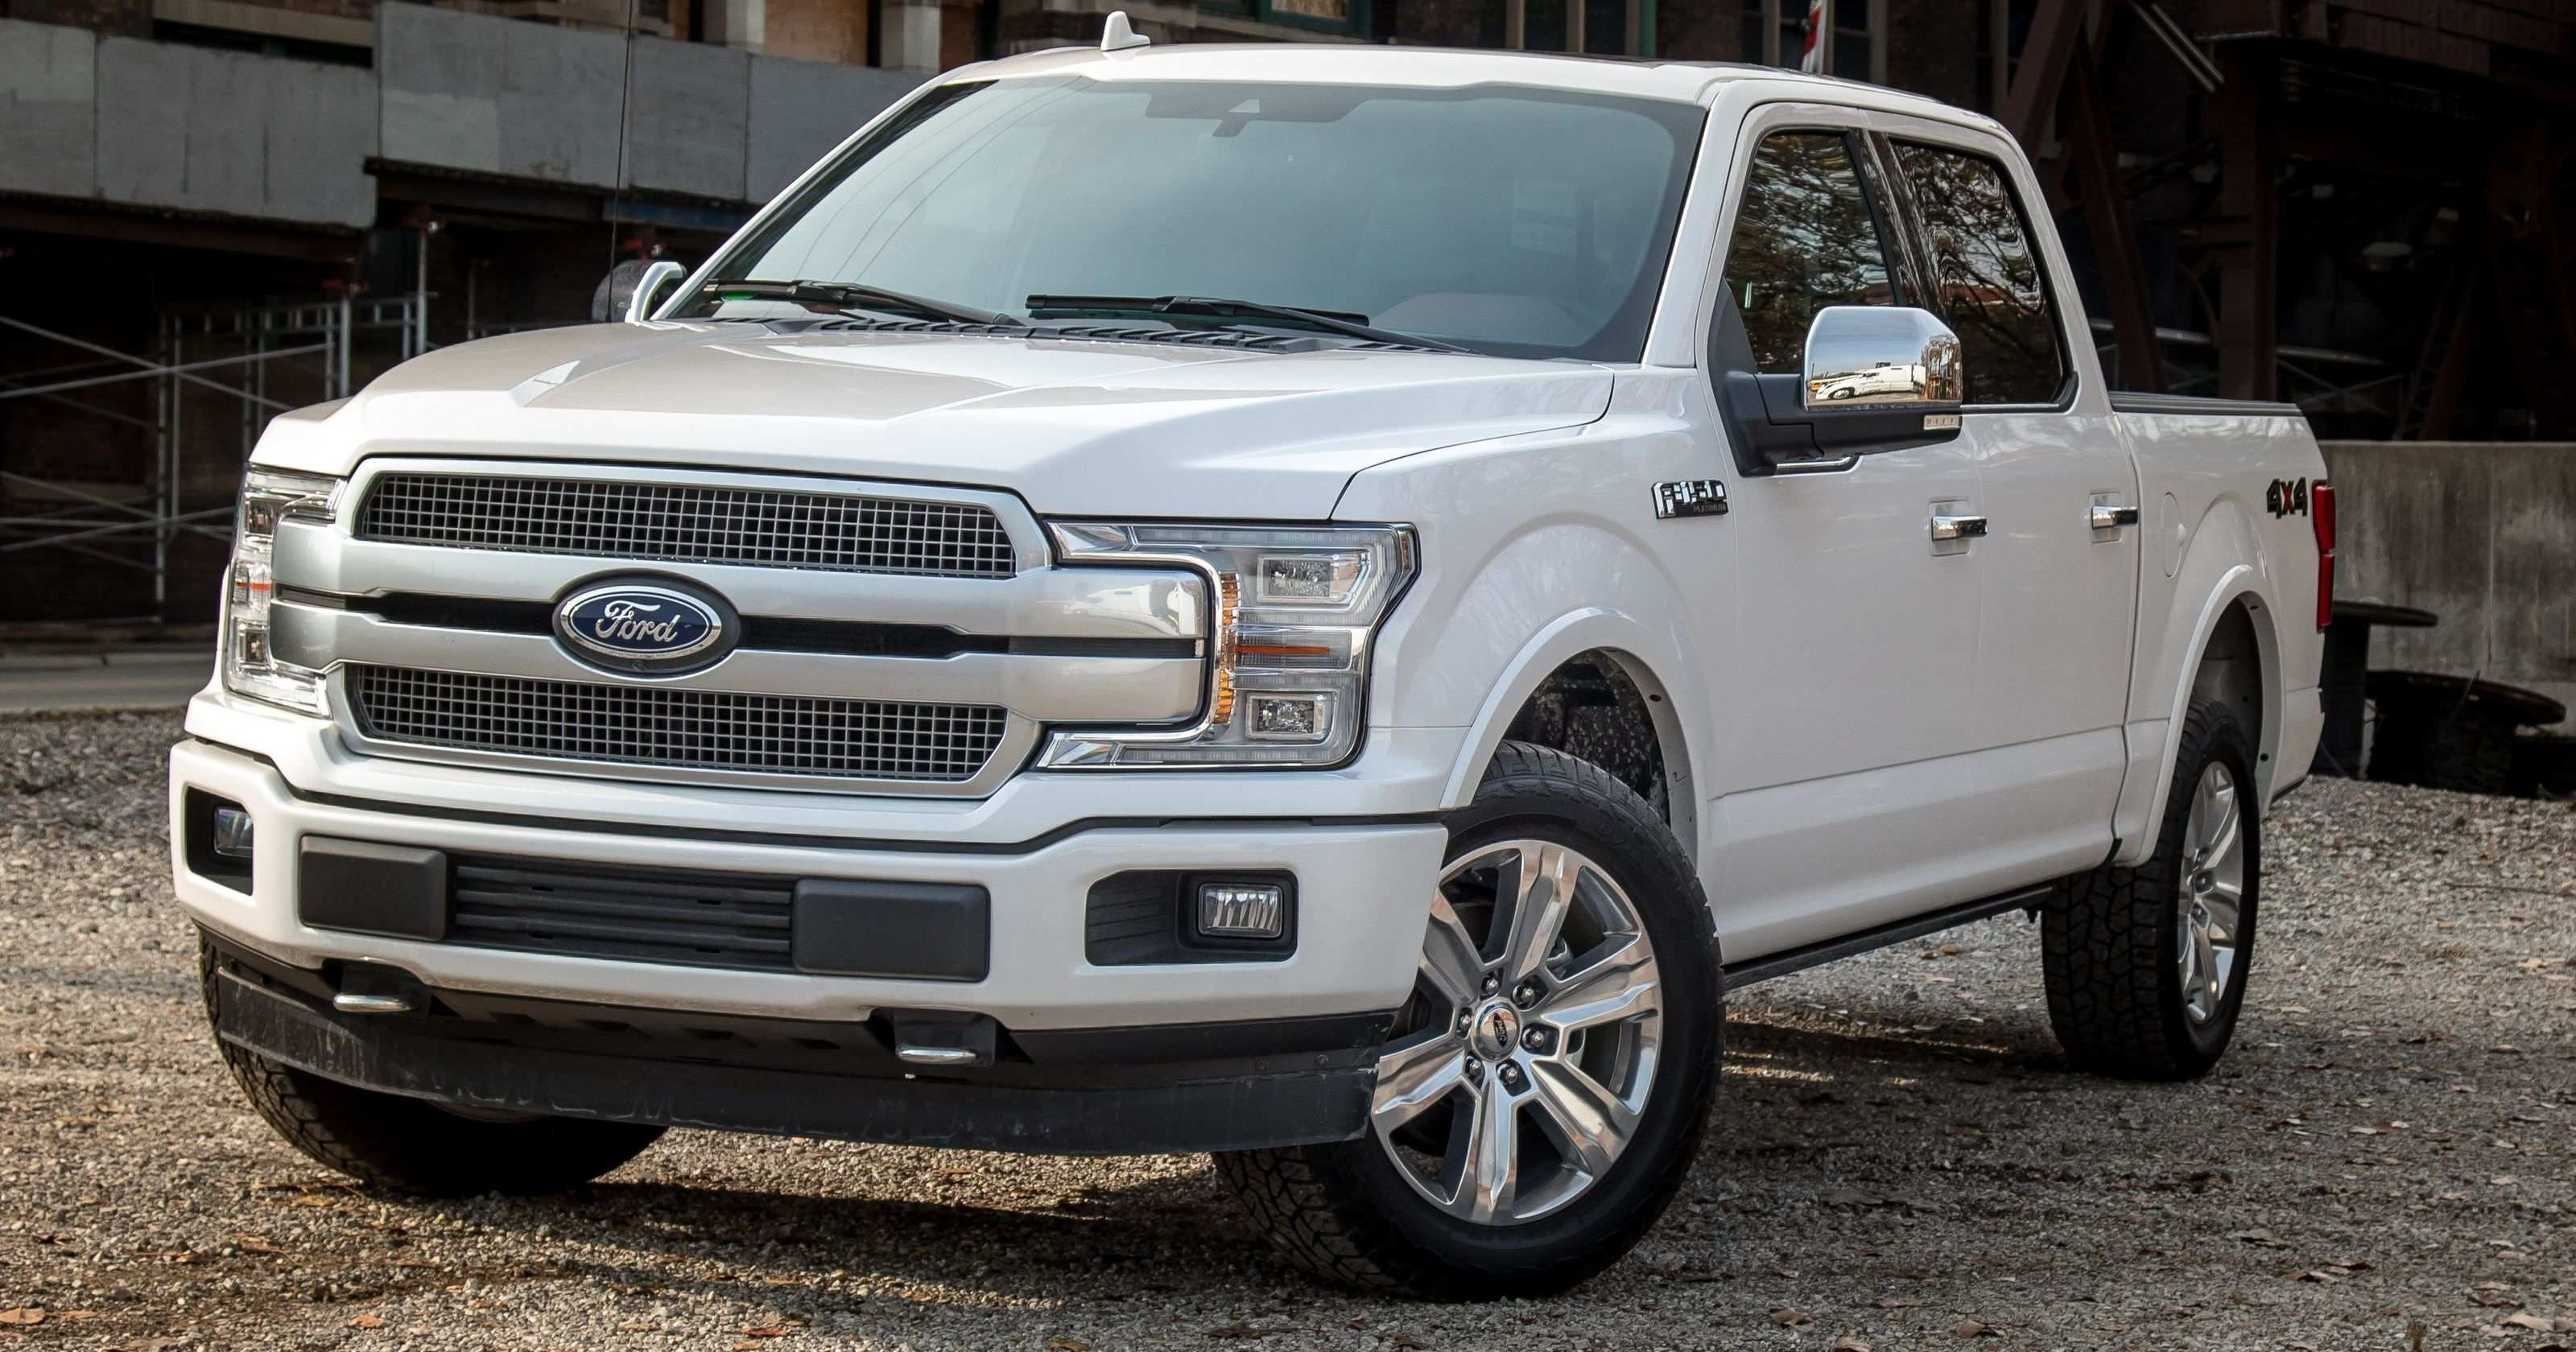 28 Great 2020 Ford Lobo 2018 Release with 2020 Ford Lobo 2018